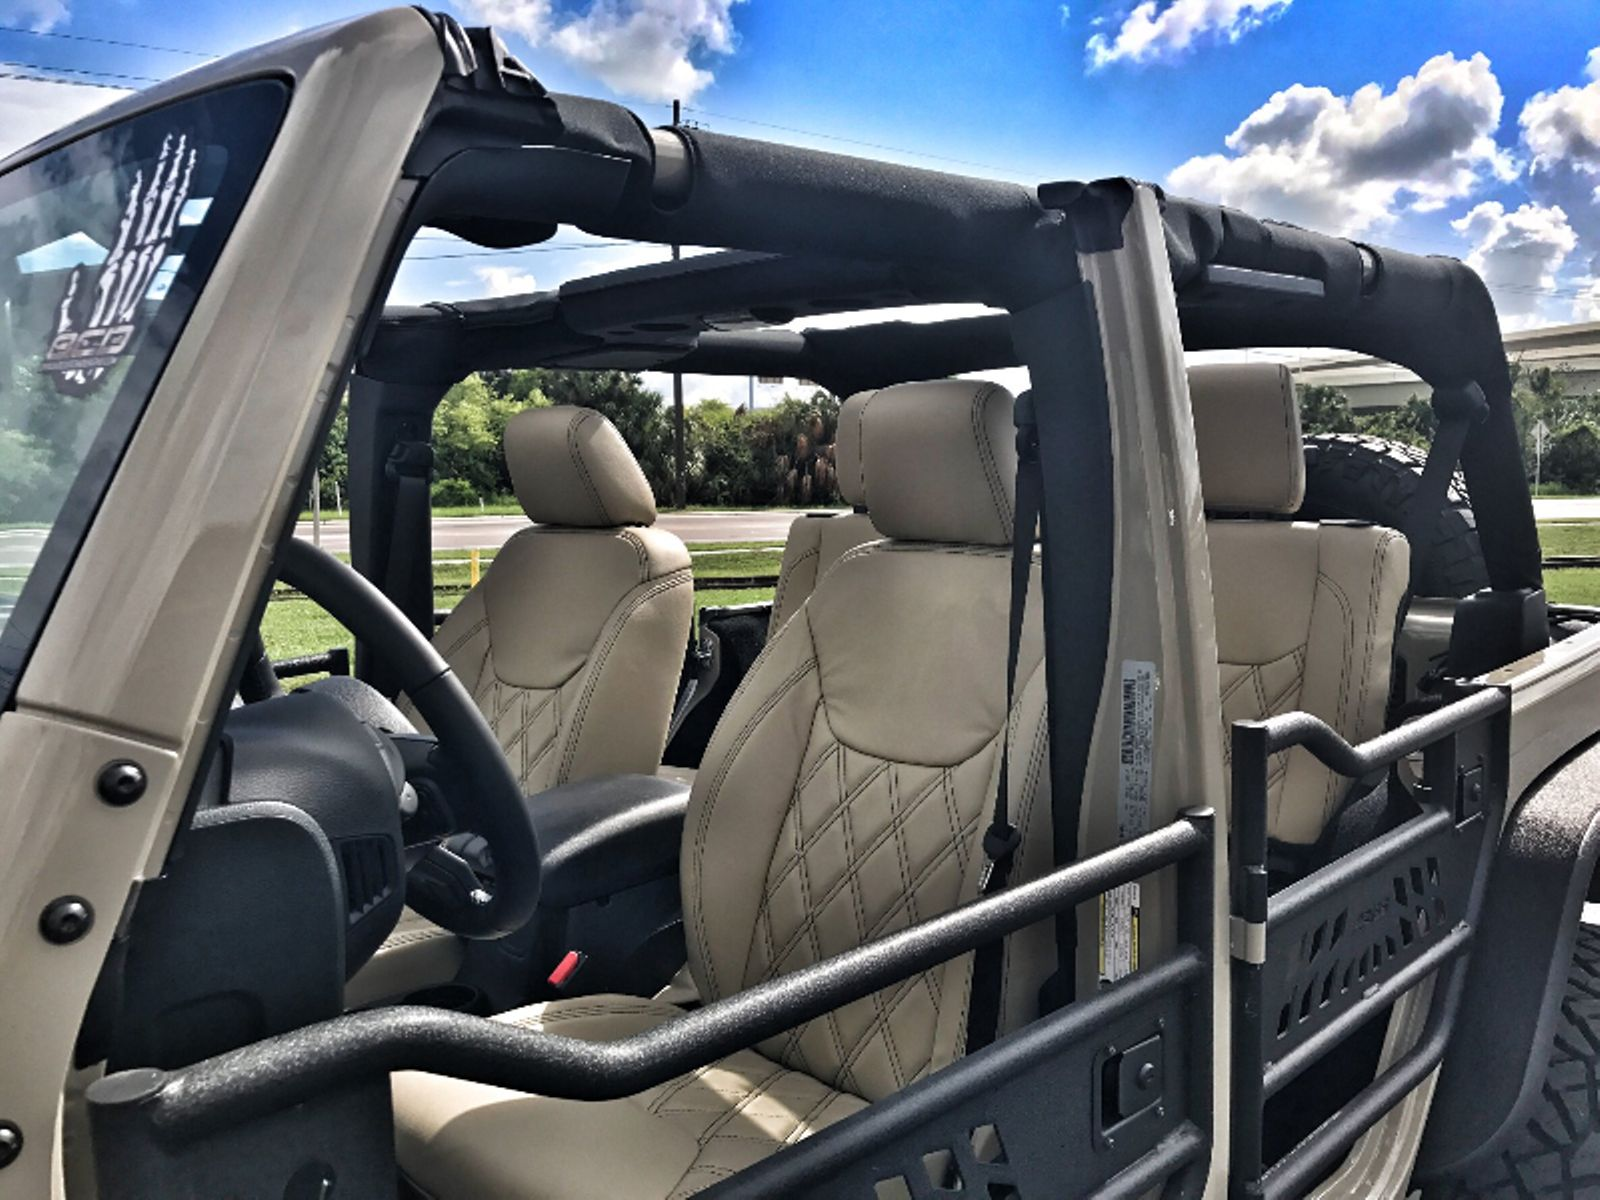 Jeep Wrangler Jk Leather Seats 2017 Unlimited Custom Lifted 24s Gobi 37s Florida Bayshore Automotive In